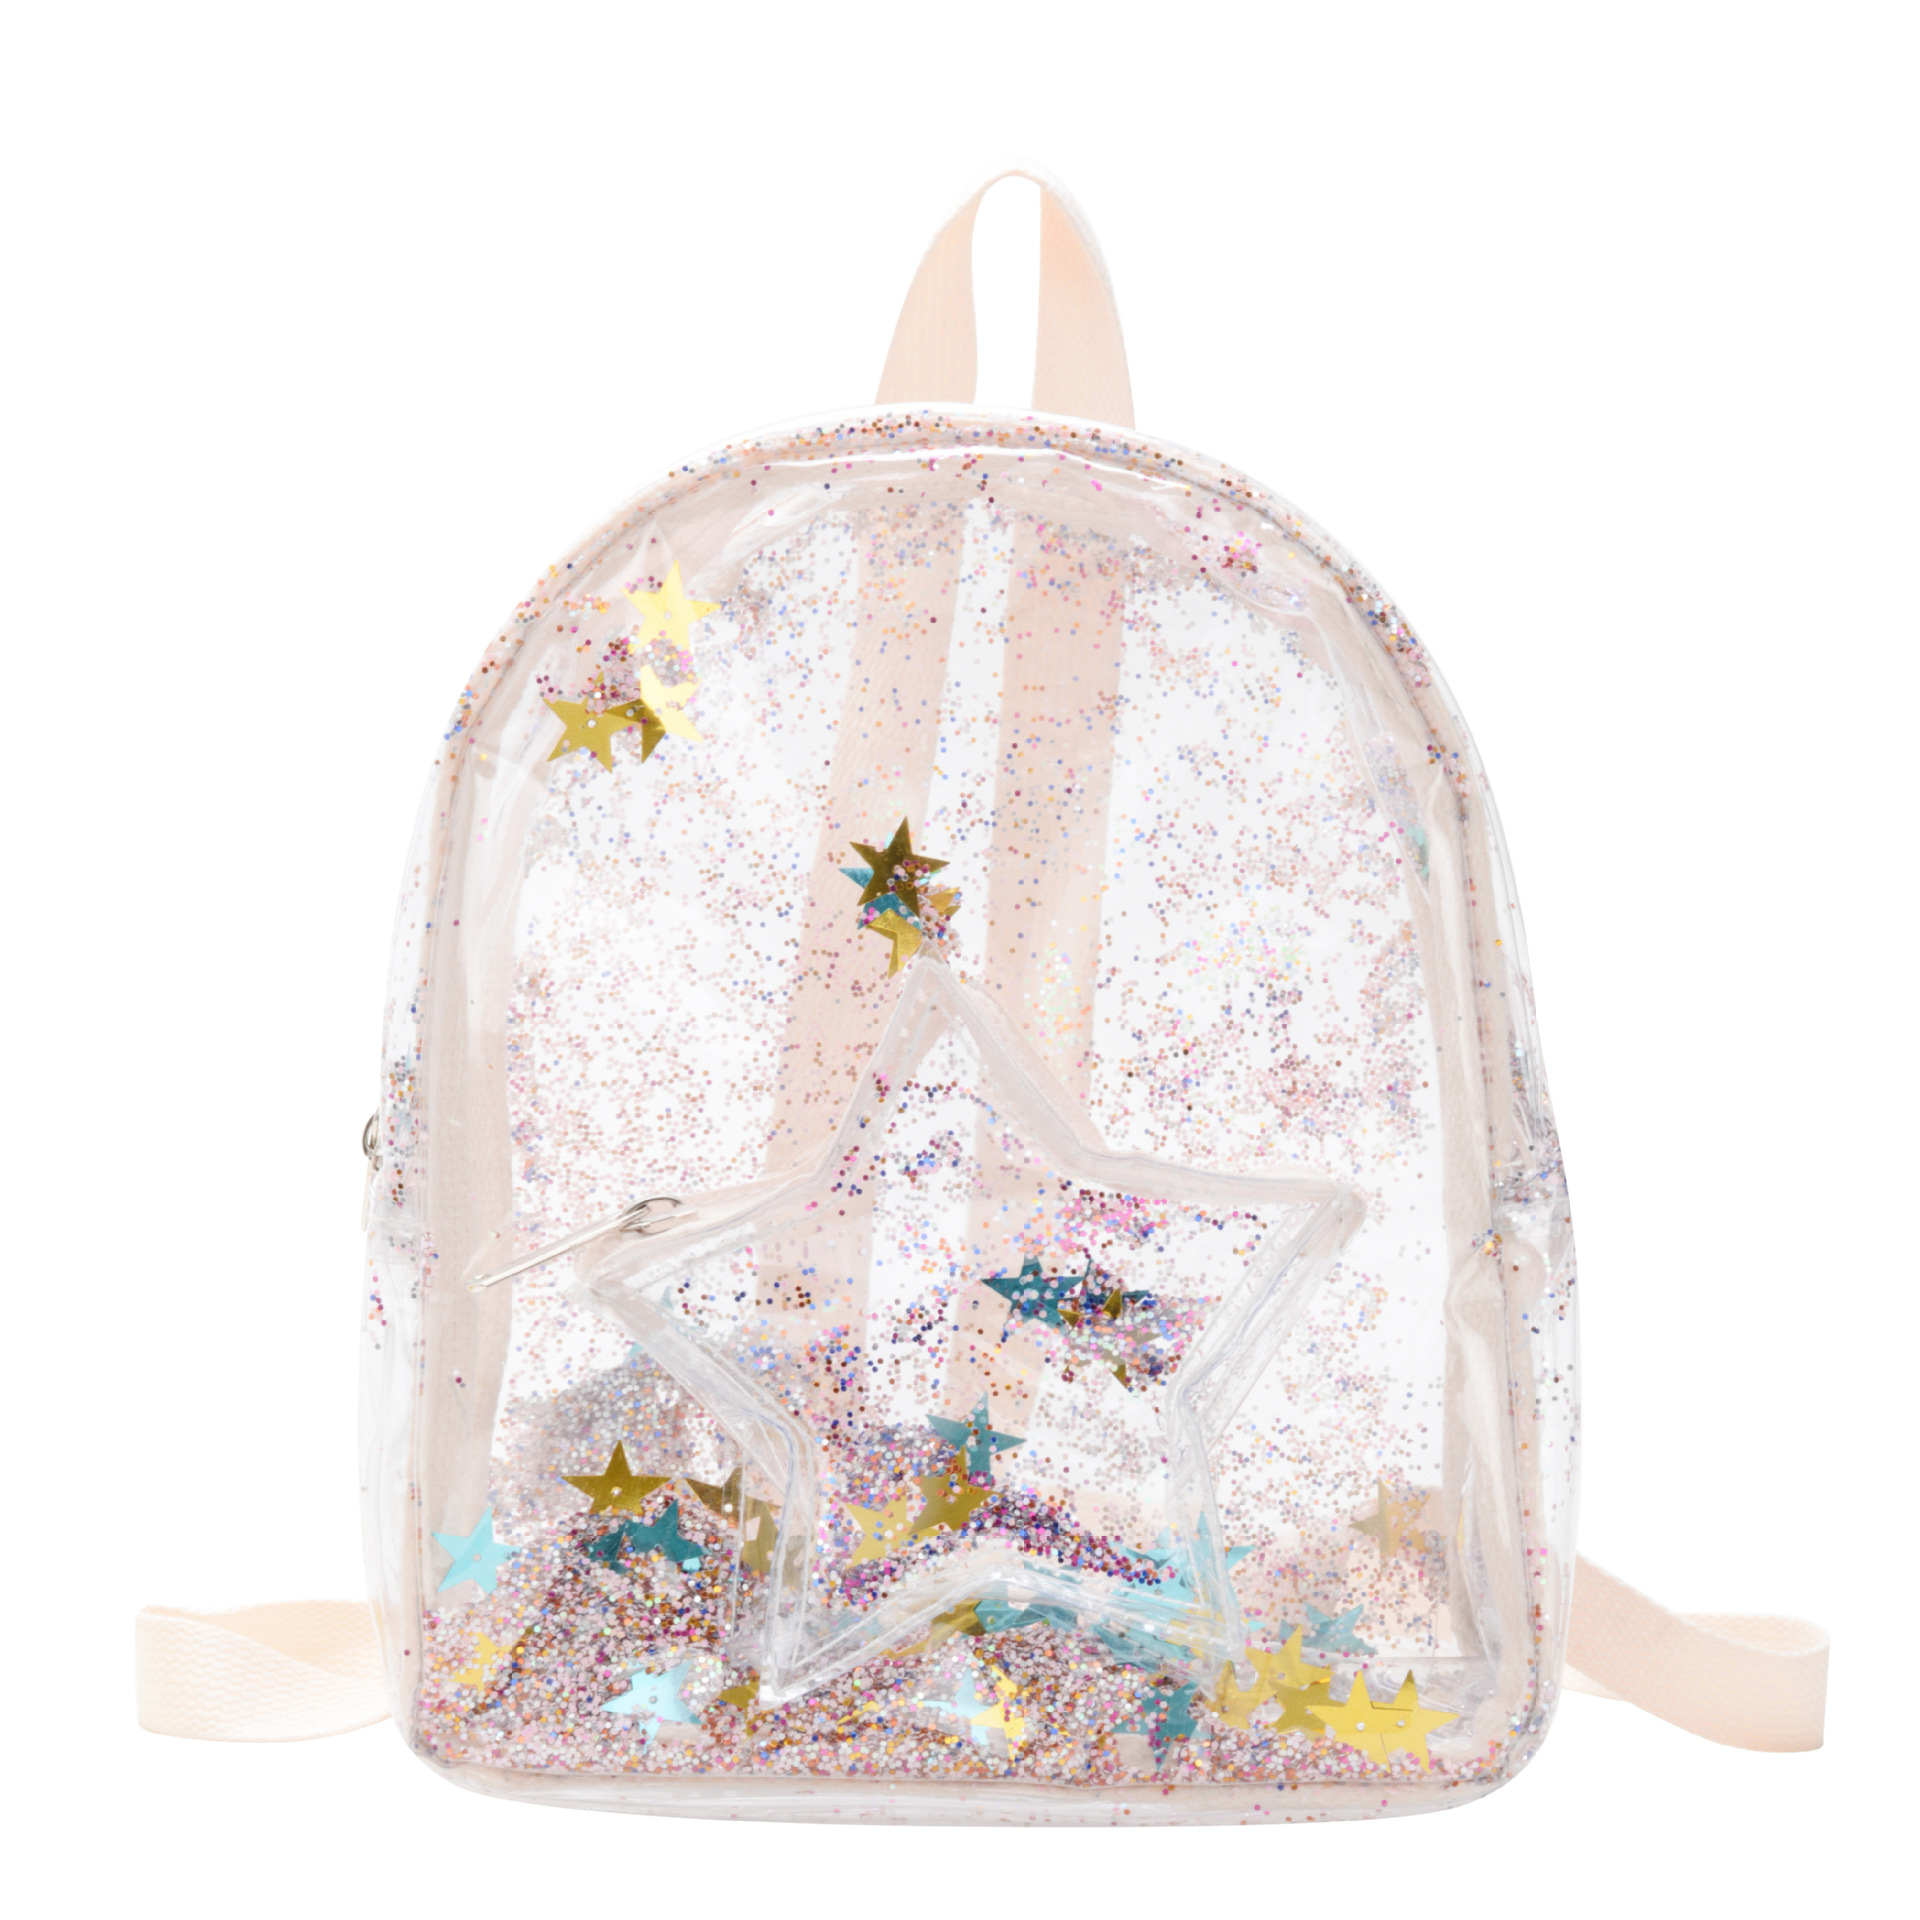 New 2020 Kids Mini Backpack Purse PVC Shinny School Bags For Girl Kawaii Transparent School Backpack Bag Baby Back Pack